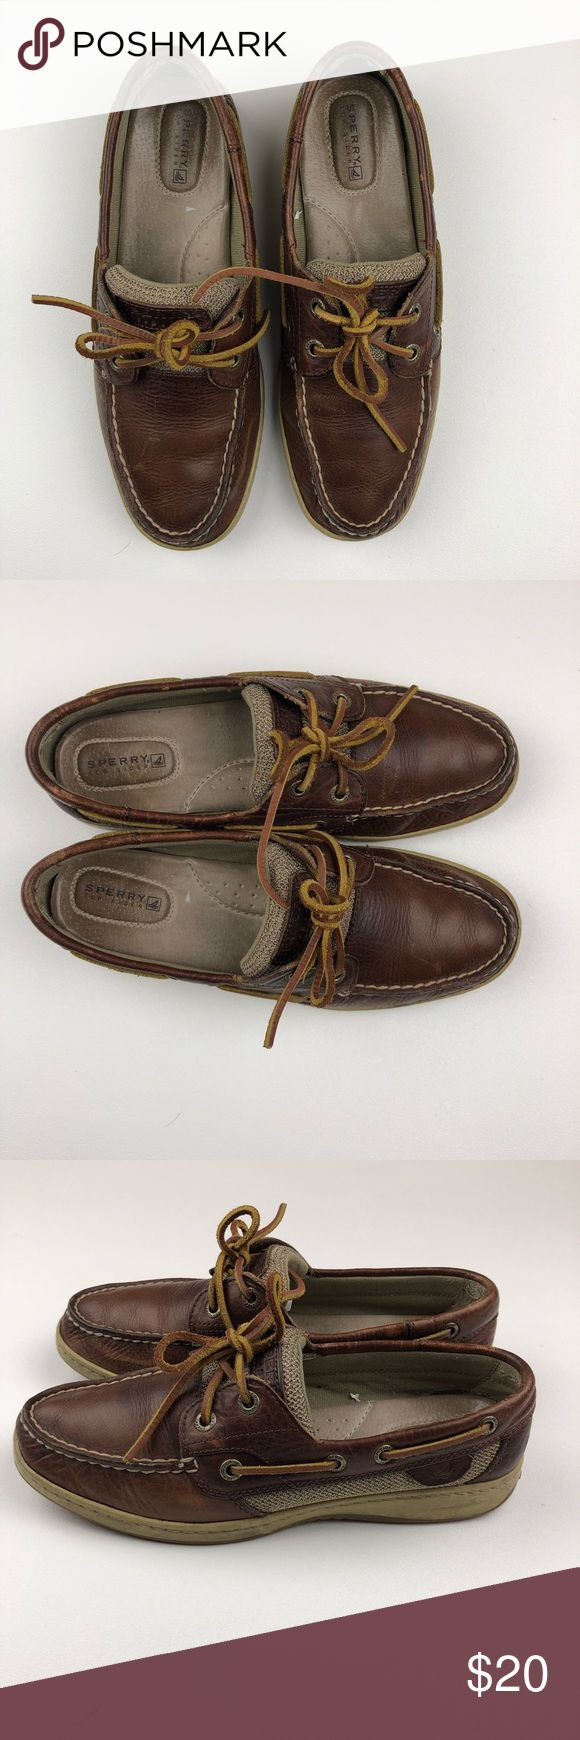 Sperry Top-Sider 2-eyelit Brown Leather Boat shoes Sperry Topsider 2-eyelit boat shoes. GUC Sperry Top-Sider Shoes